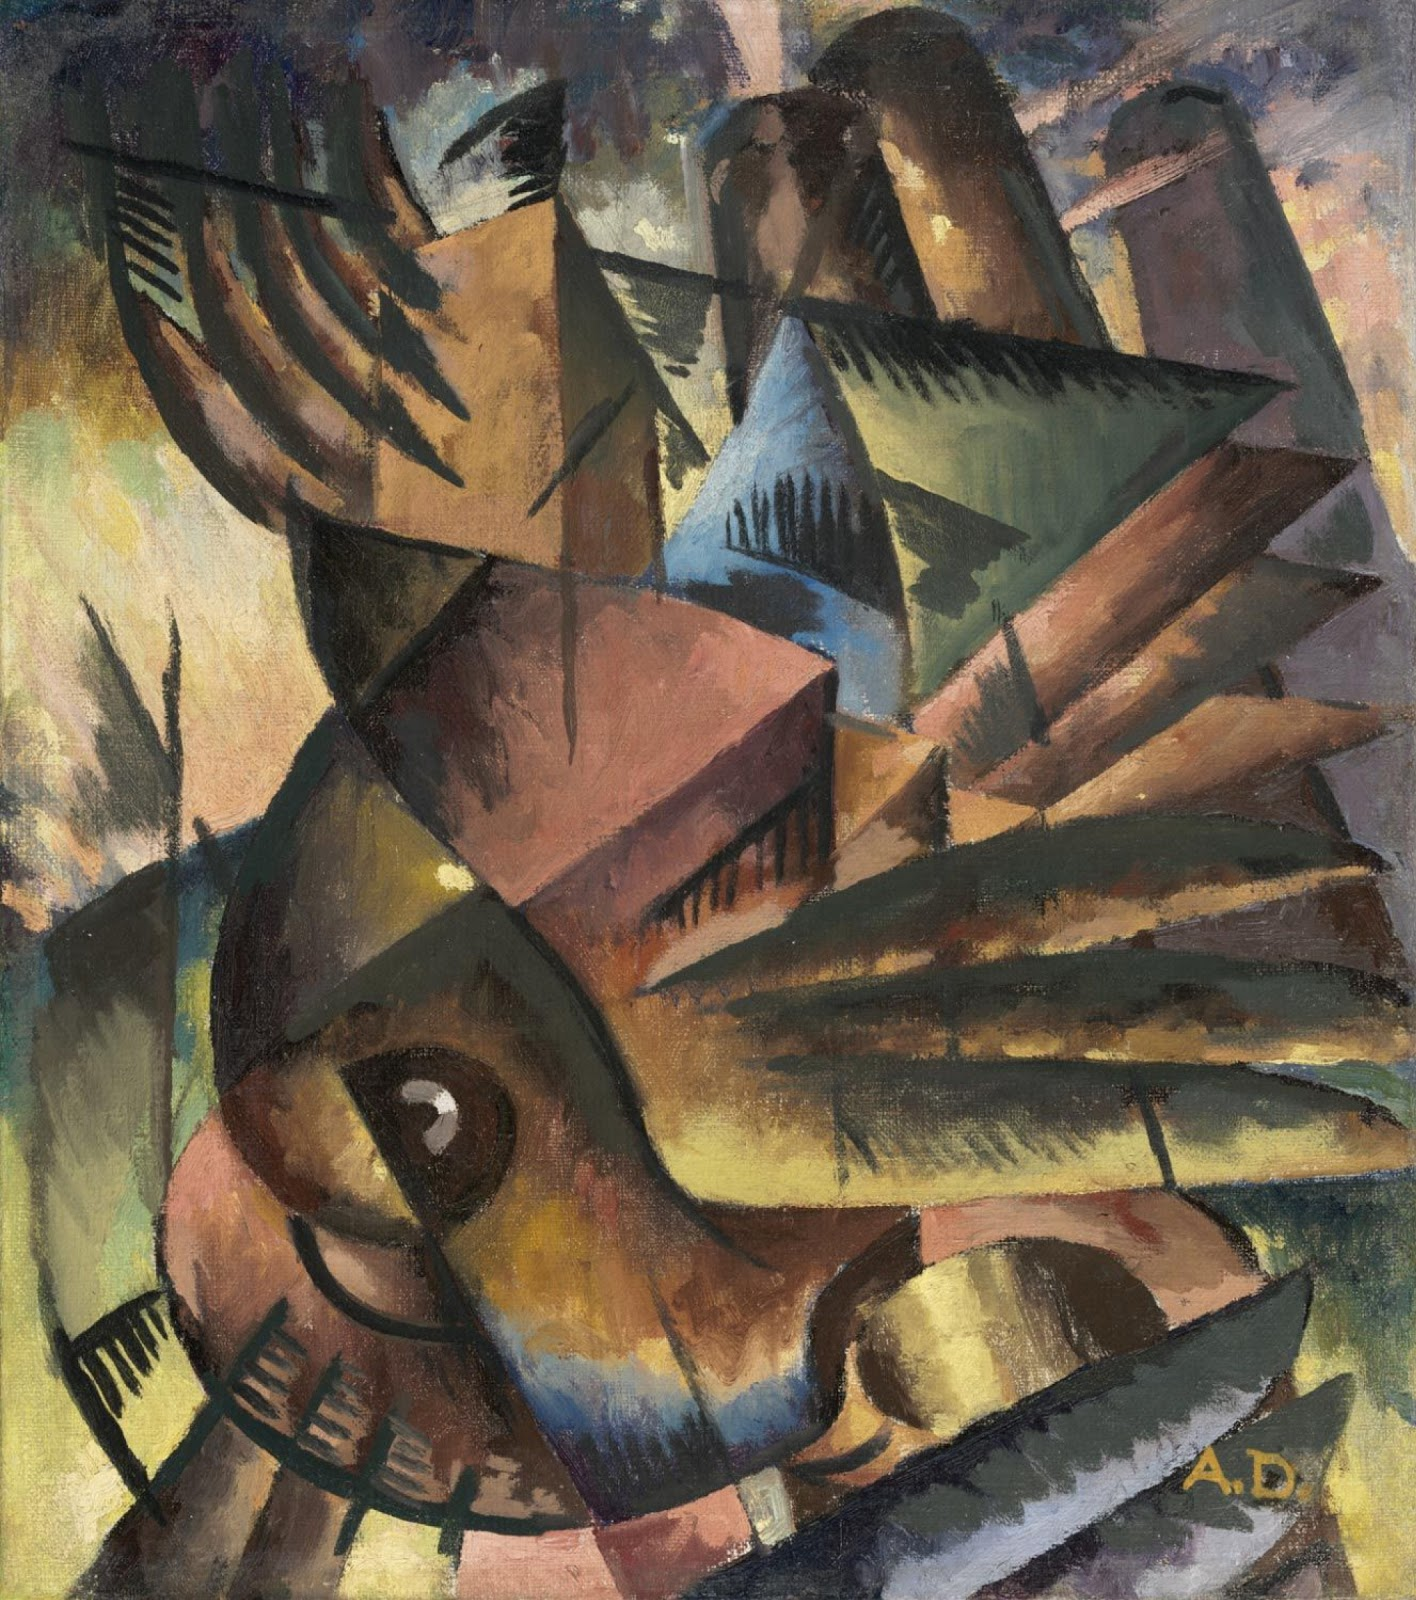 A cubist depiction of birds in flight with purples, yellows, greens, and maroons.